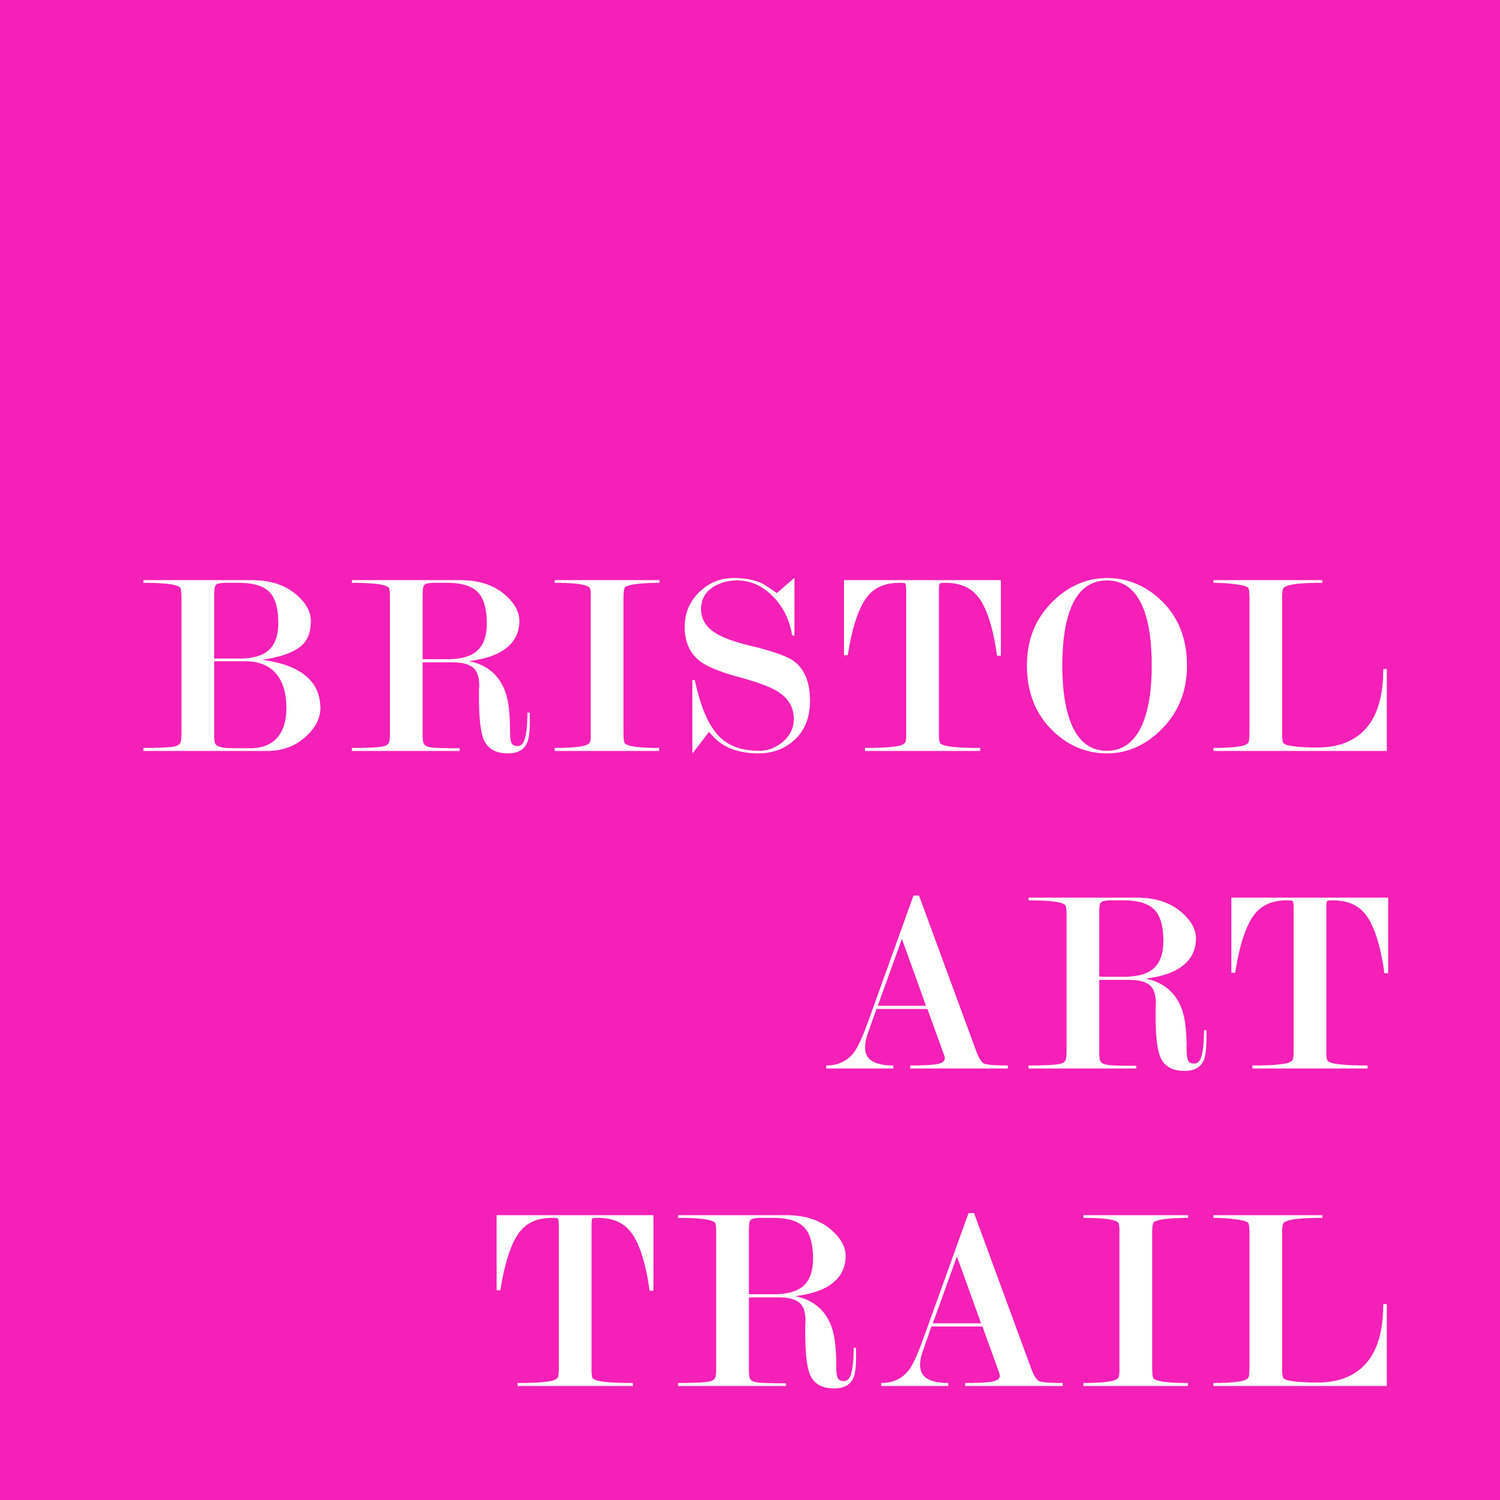 BRISTOL ART TRAIL